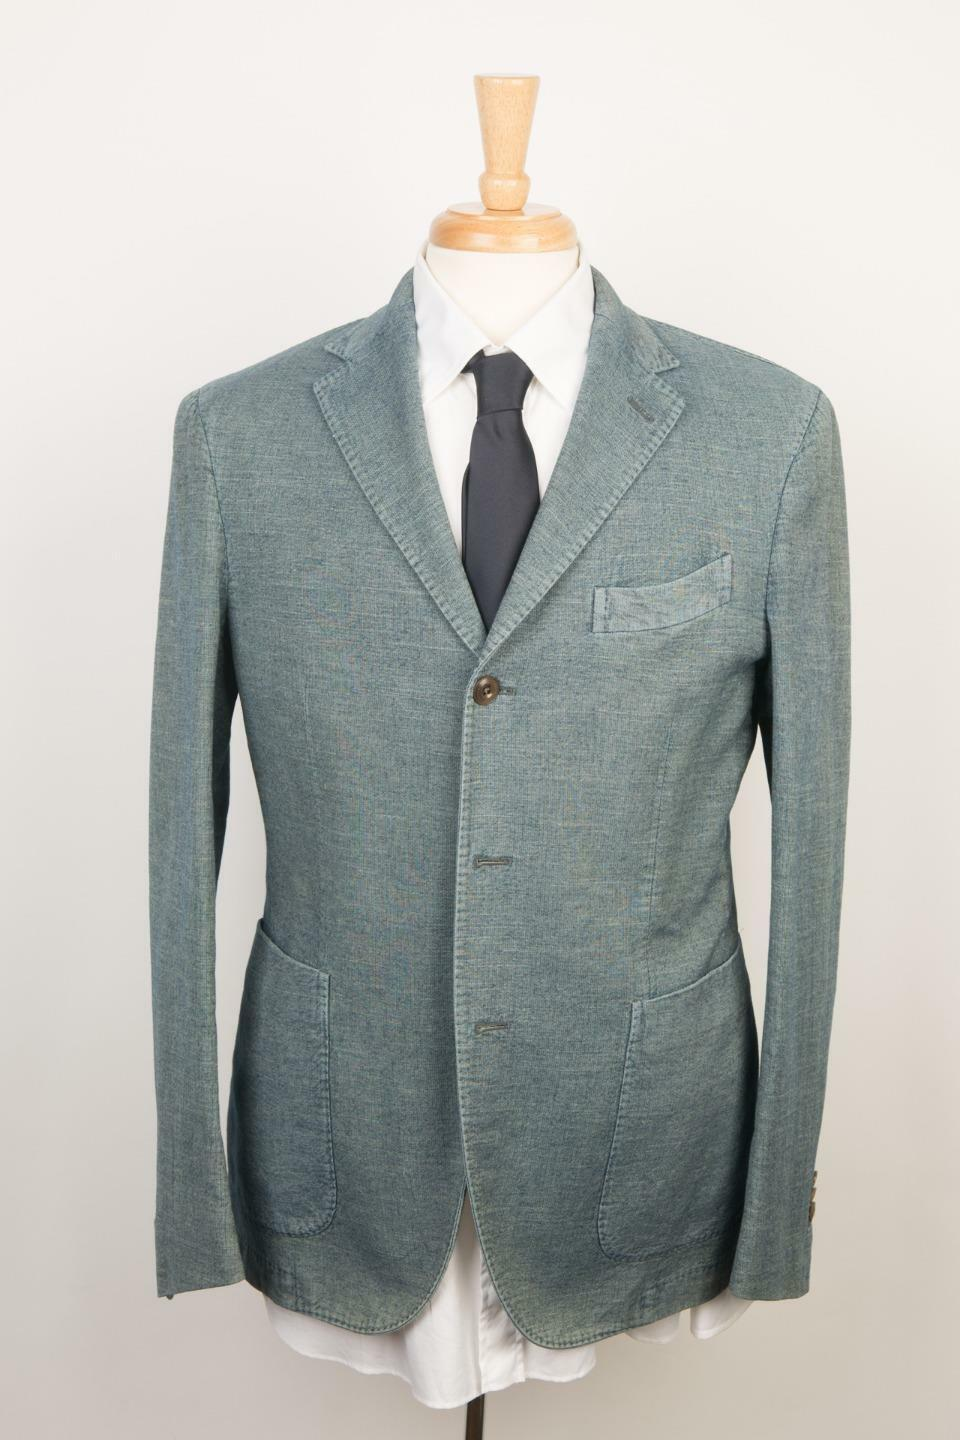 Boglioli  'Coat' Denim Blau 3 Roll 2 Button 100% Cotton Sport Coat 50 IT 40 US